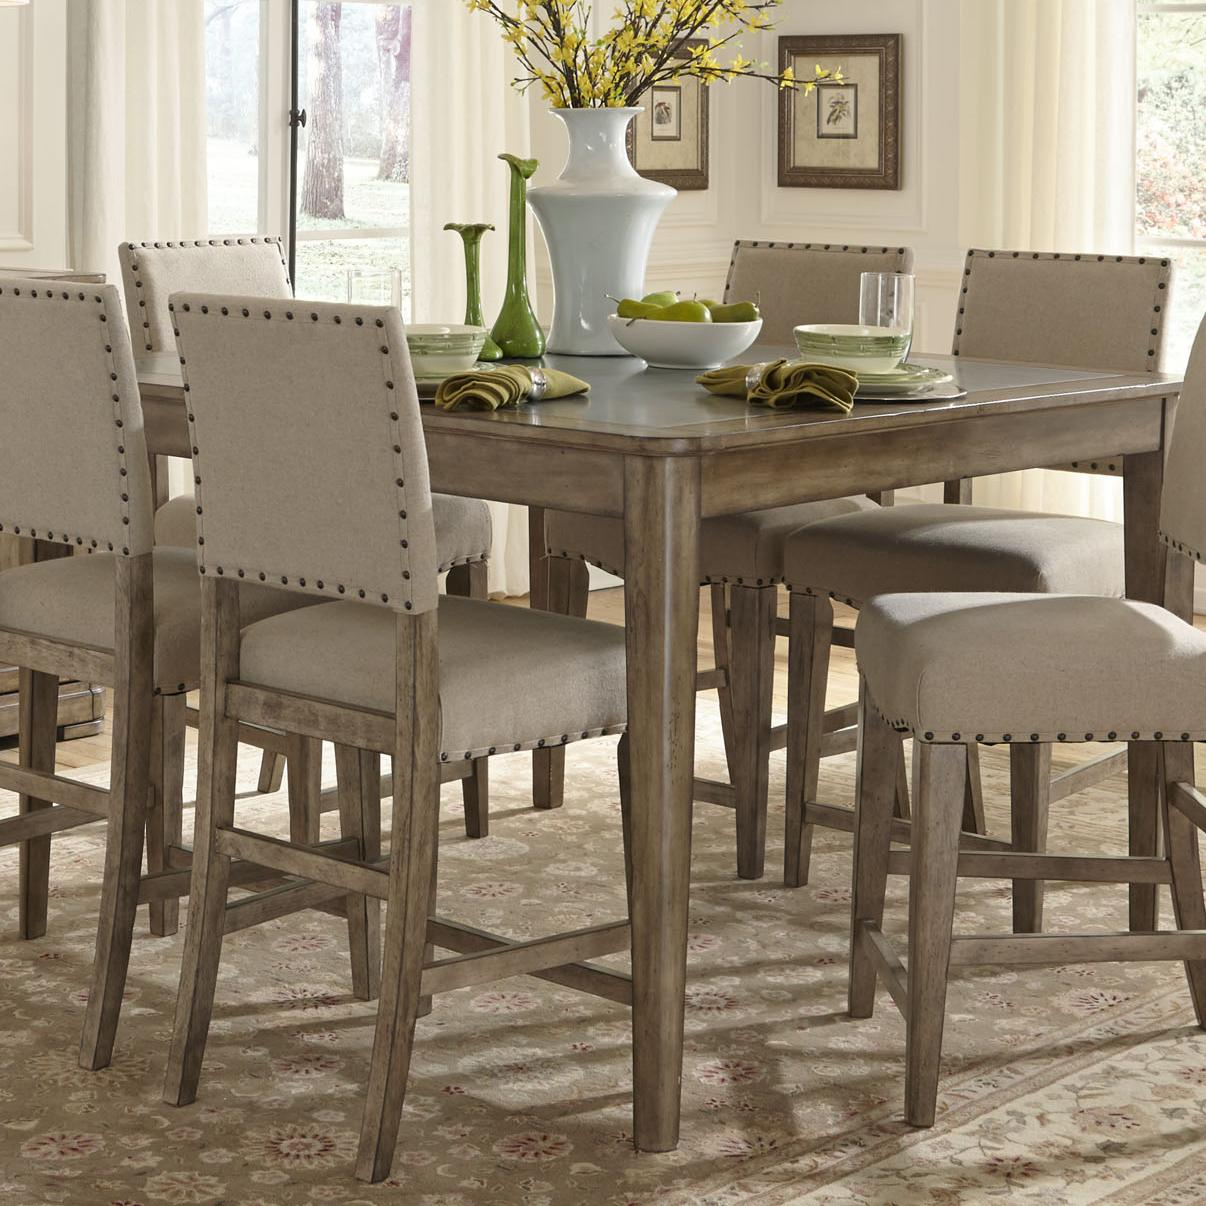 Liberty furniture weatherford rustic casual gathering for Casual dining table and chairs